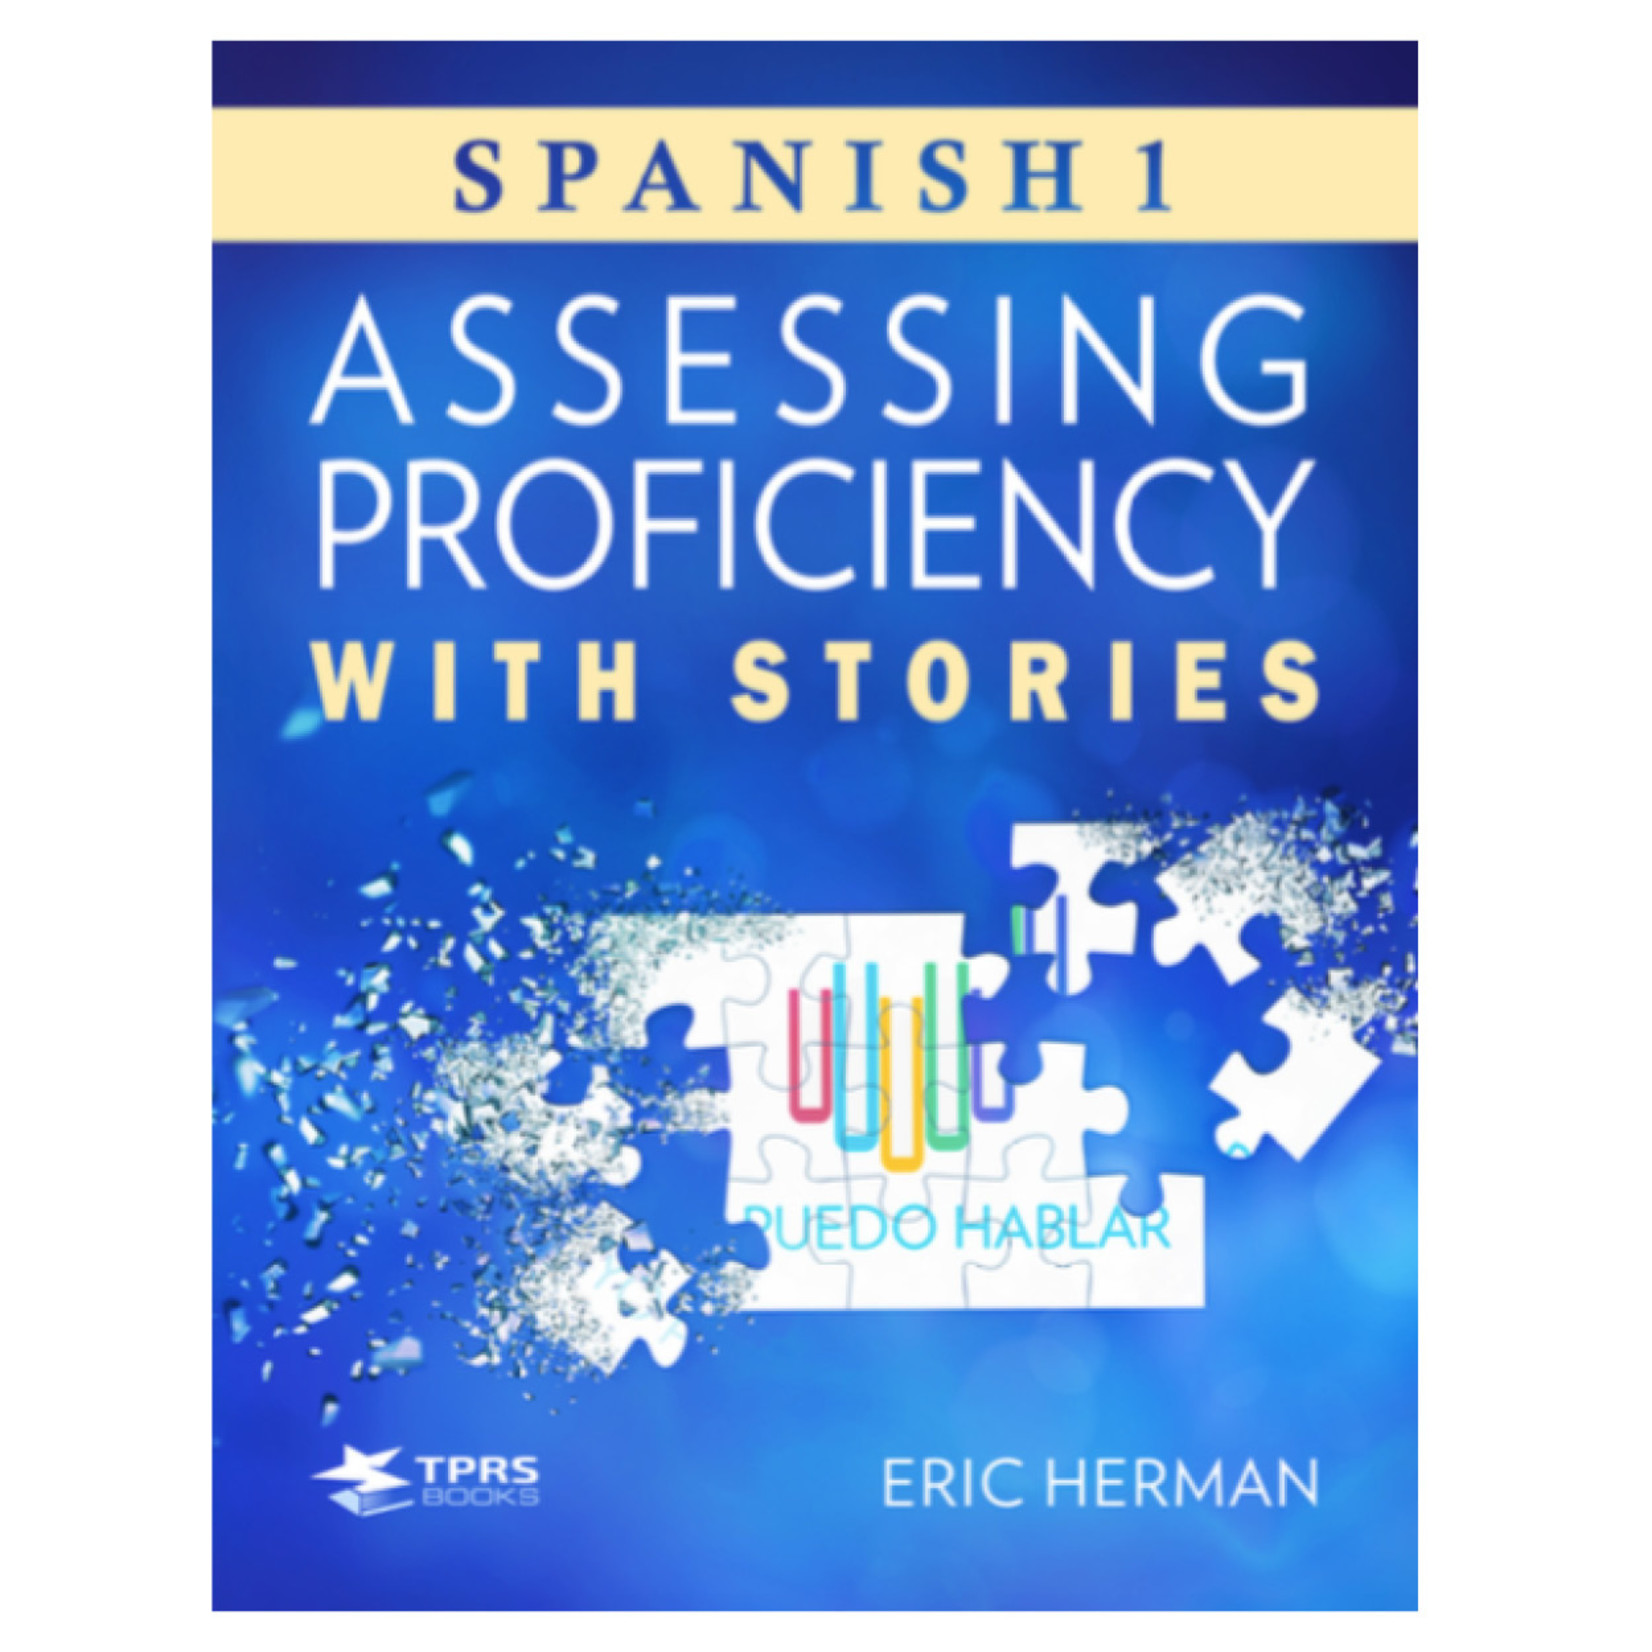 TPRS Books Assessing proficiency with Spanish stories